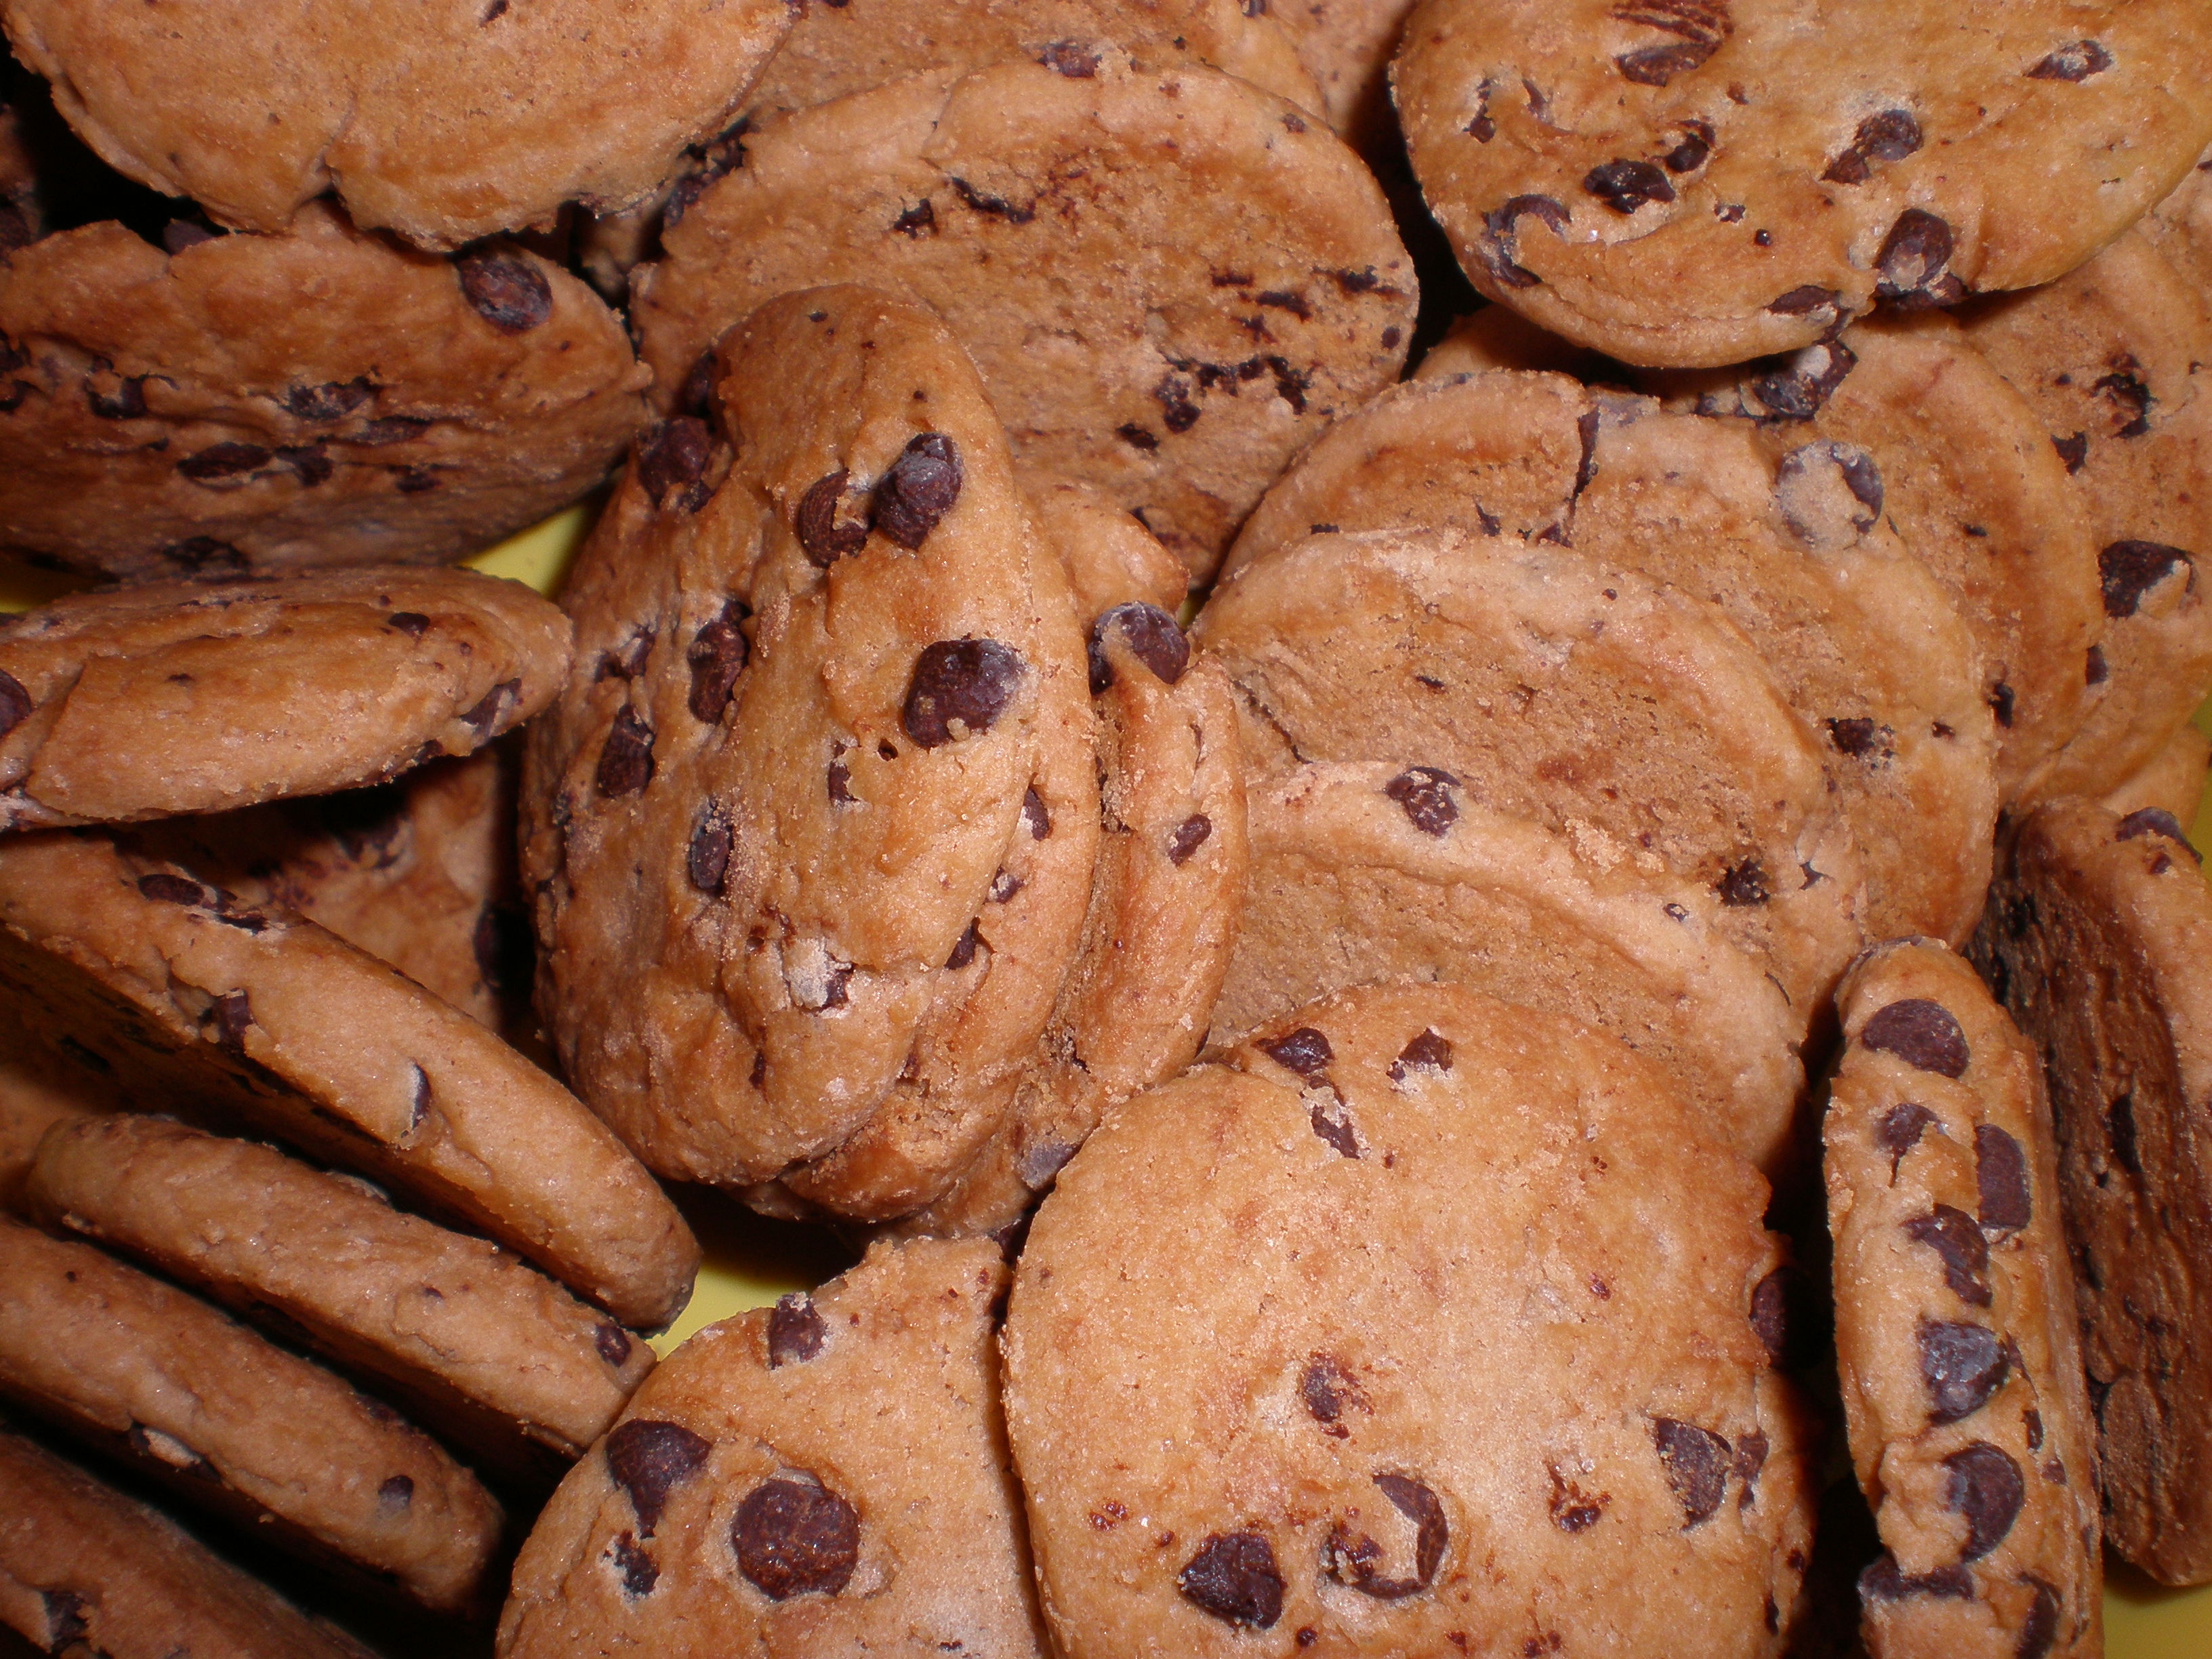 File:Chips Ahoy! regular chocolate chip cookies.JPG - Wikipedia, the ...